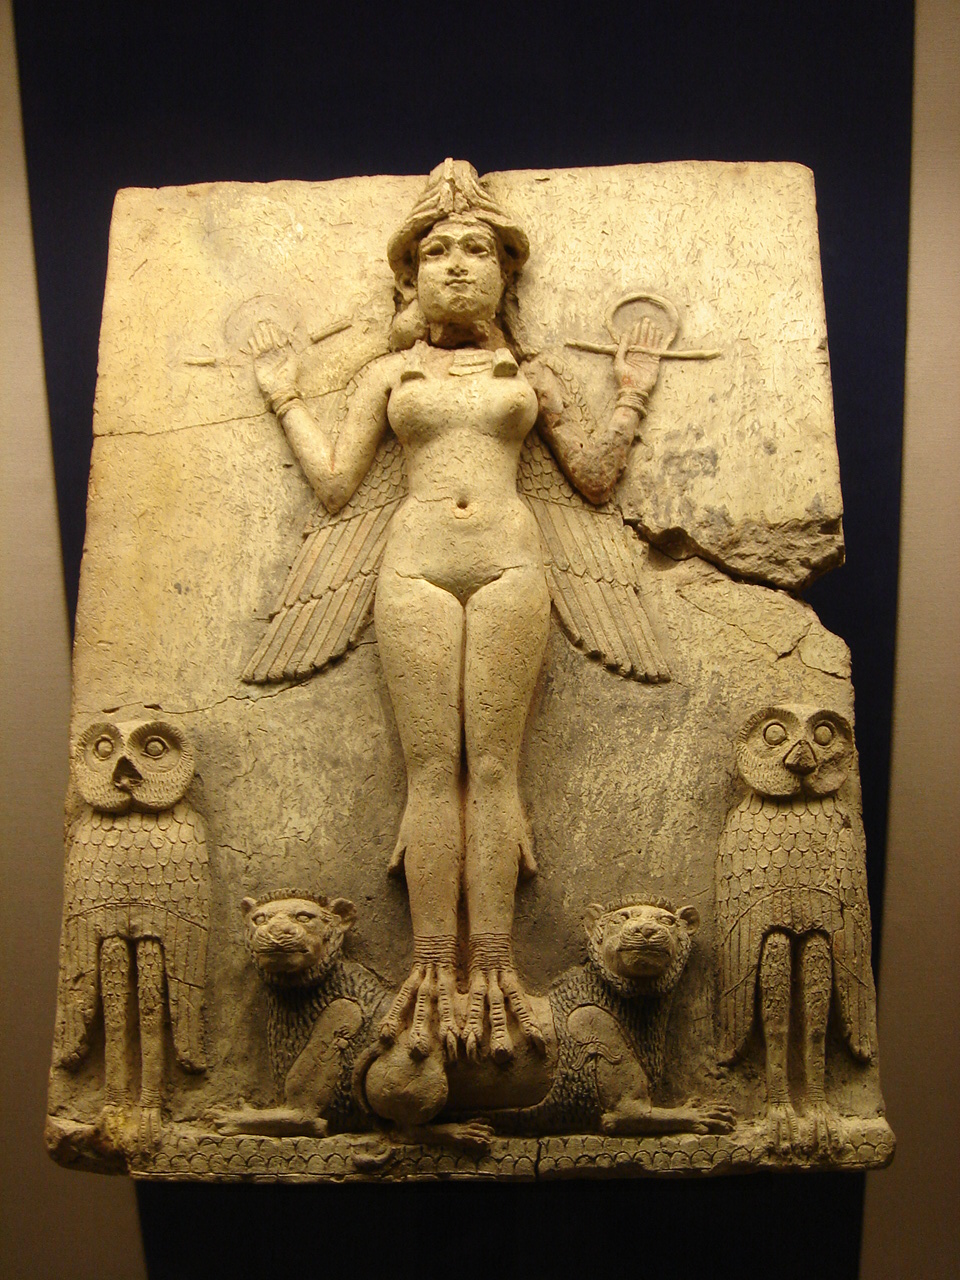 http://upload.wikimedia.org/wikipedia/commons/8/80/Queen_of_the_Night_%28Babylon%29.jpg?uselang=ru